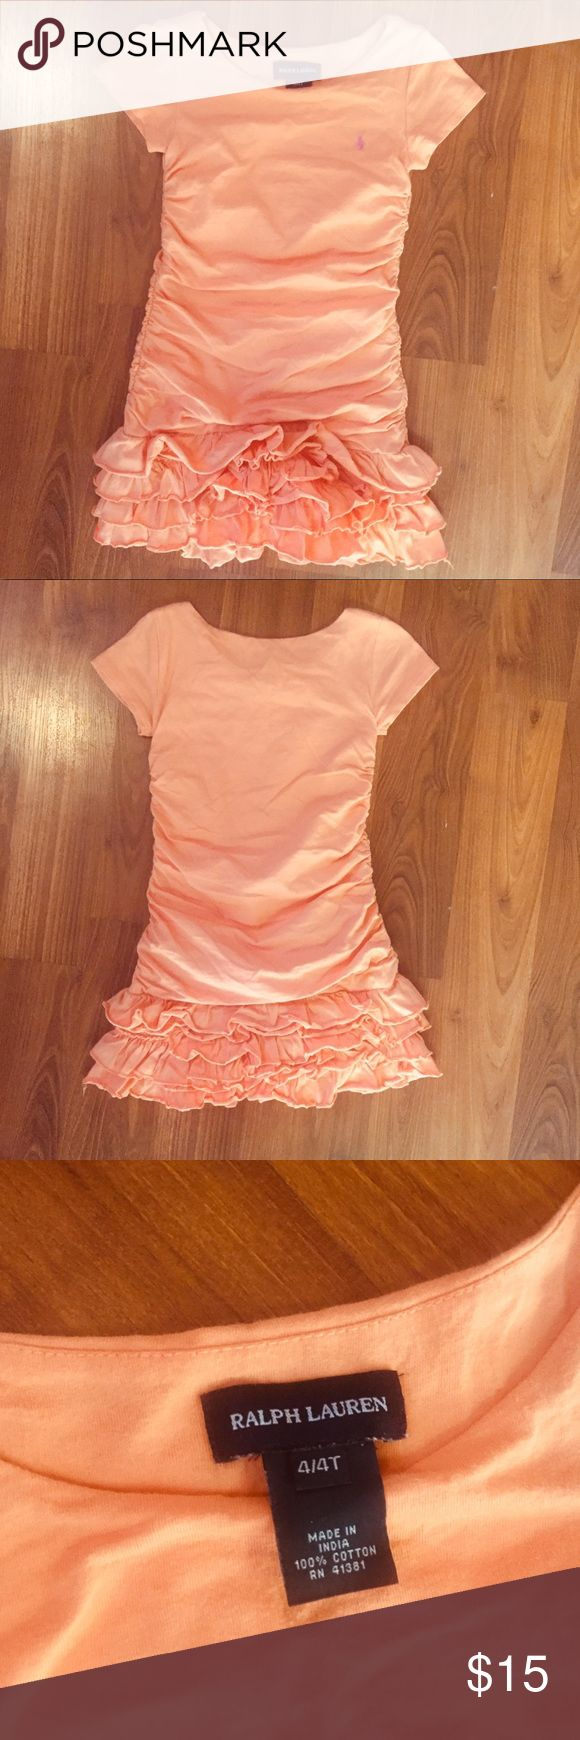 Ralph Lauren toddler dress Adorable coral toddler girl dress. It has gathered sides, a ruffle skirt, and a purple Polo logo. 100% soft jersey cotton. Excellent condition! Ralph Lauren Dresses Casual